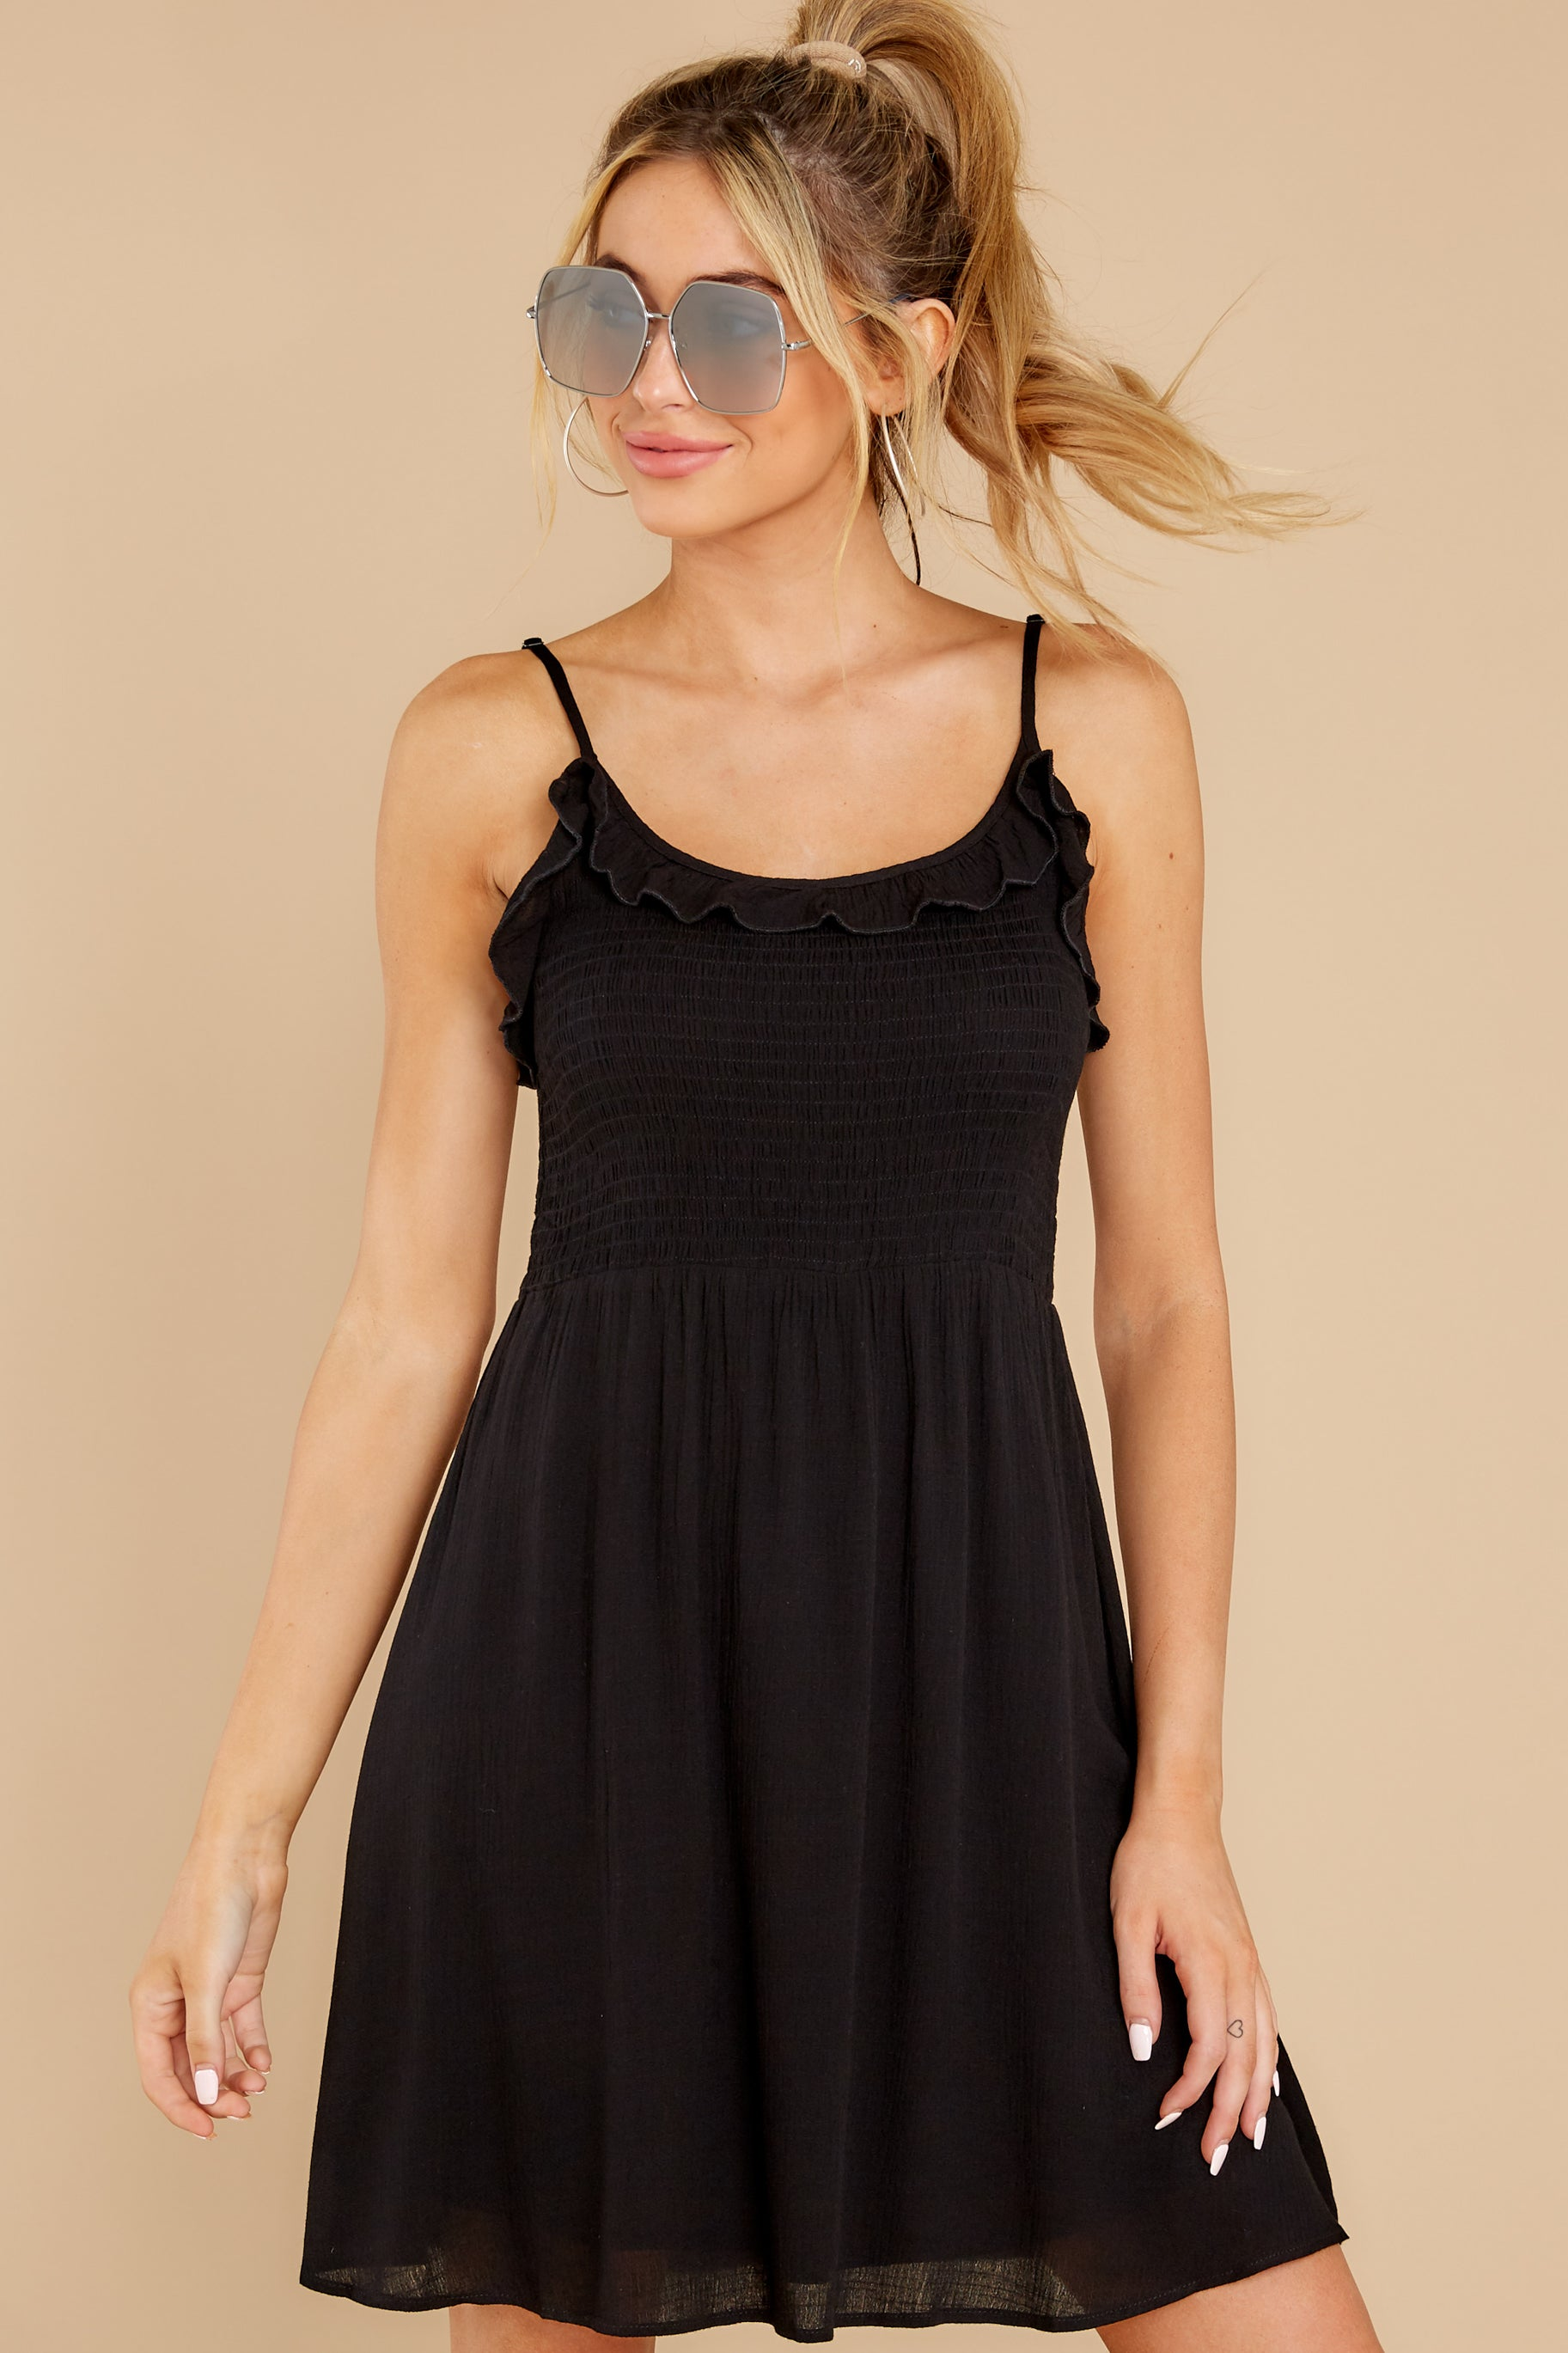 7 As You Are Black Dress at reddress.com